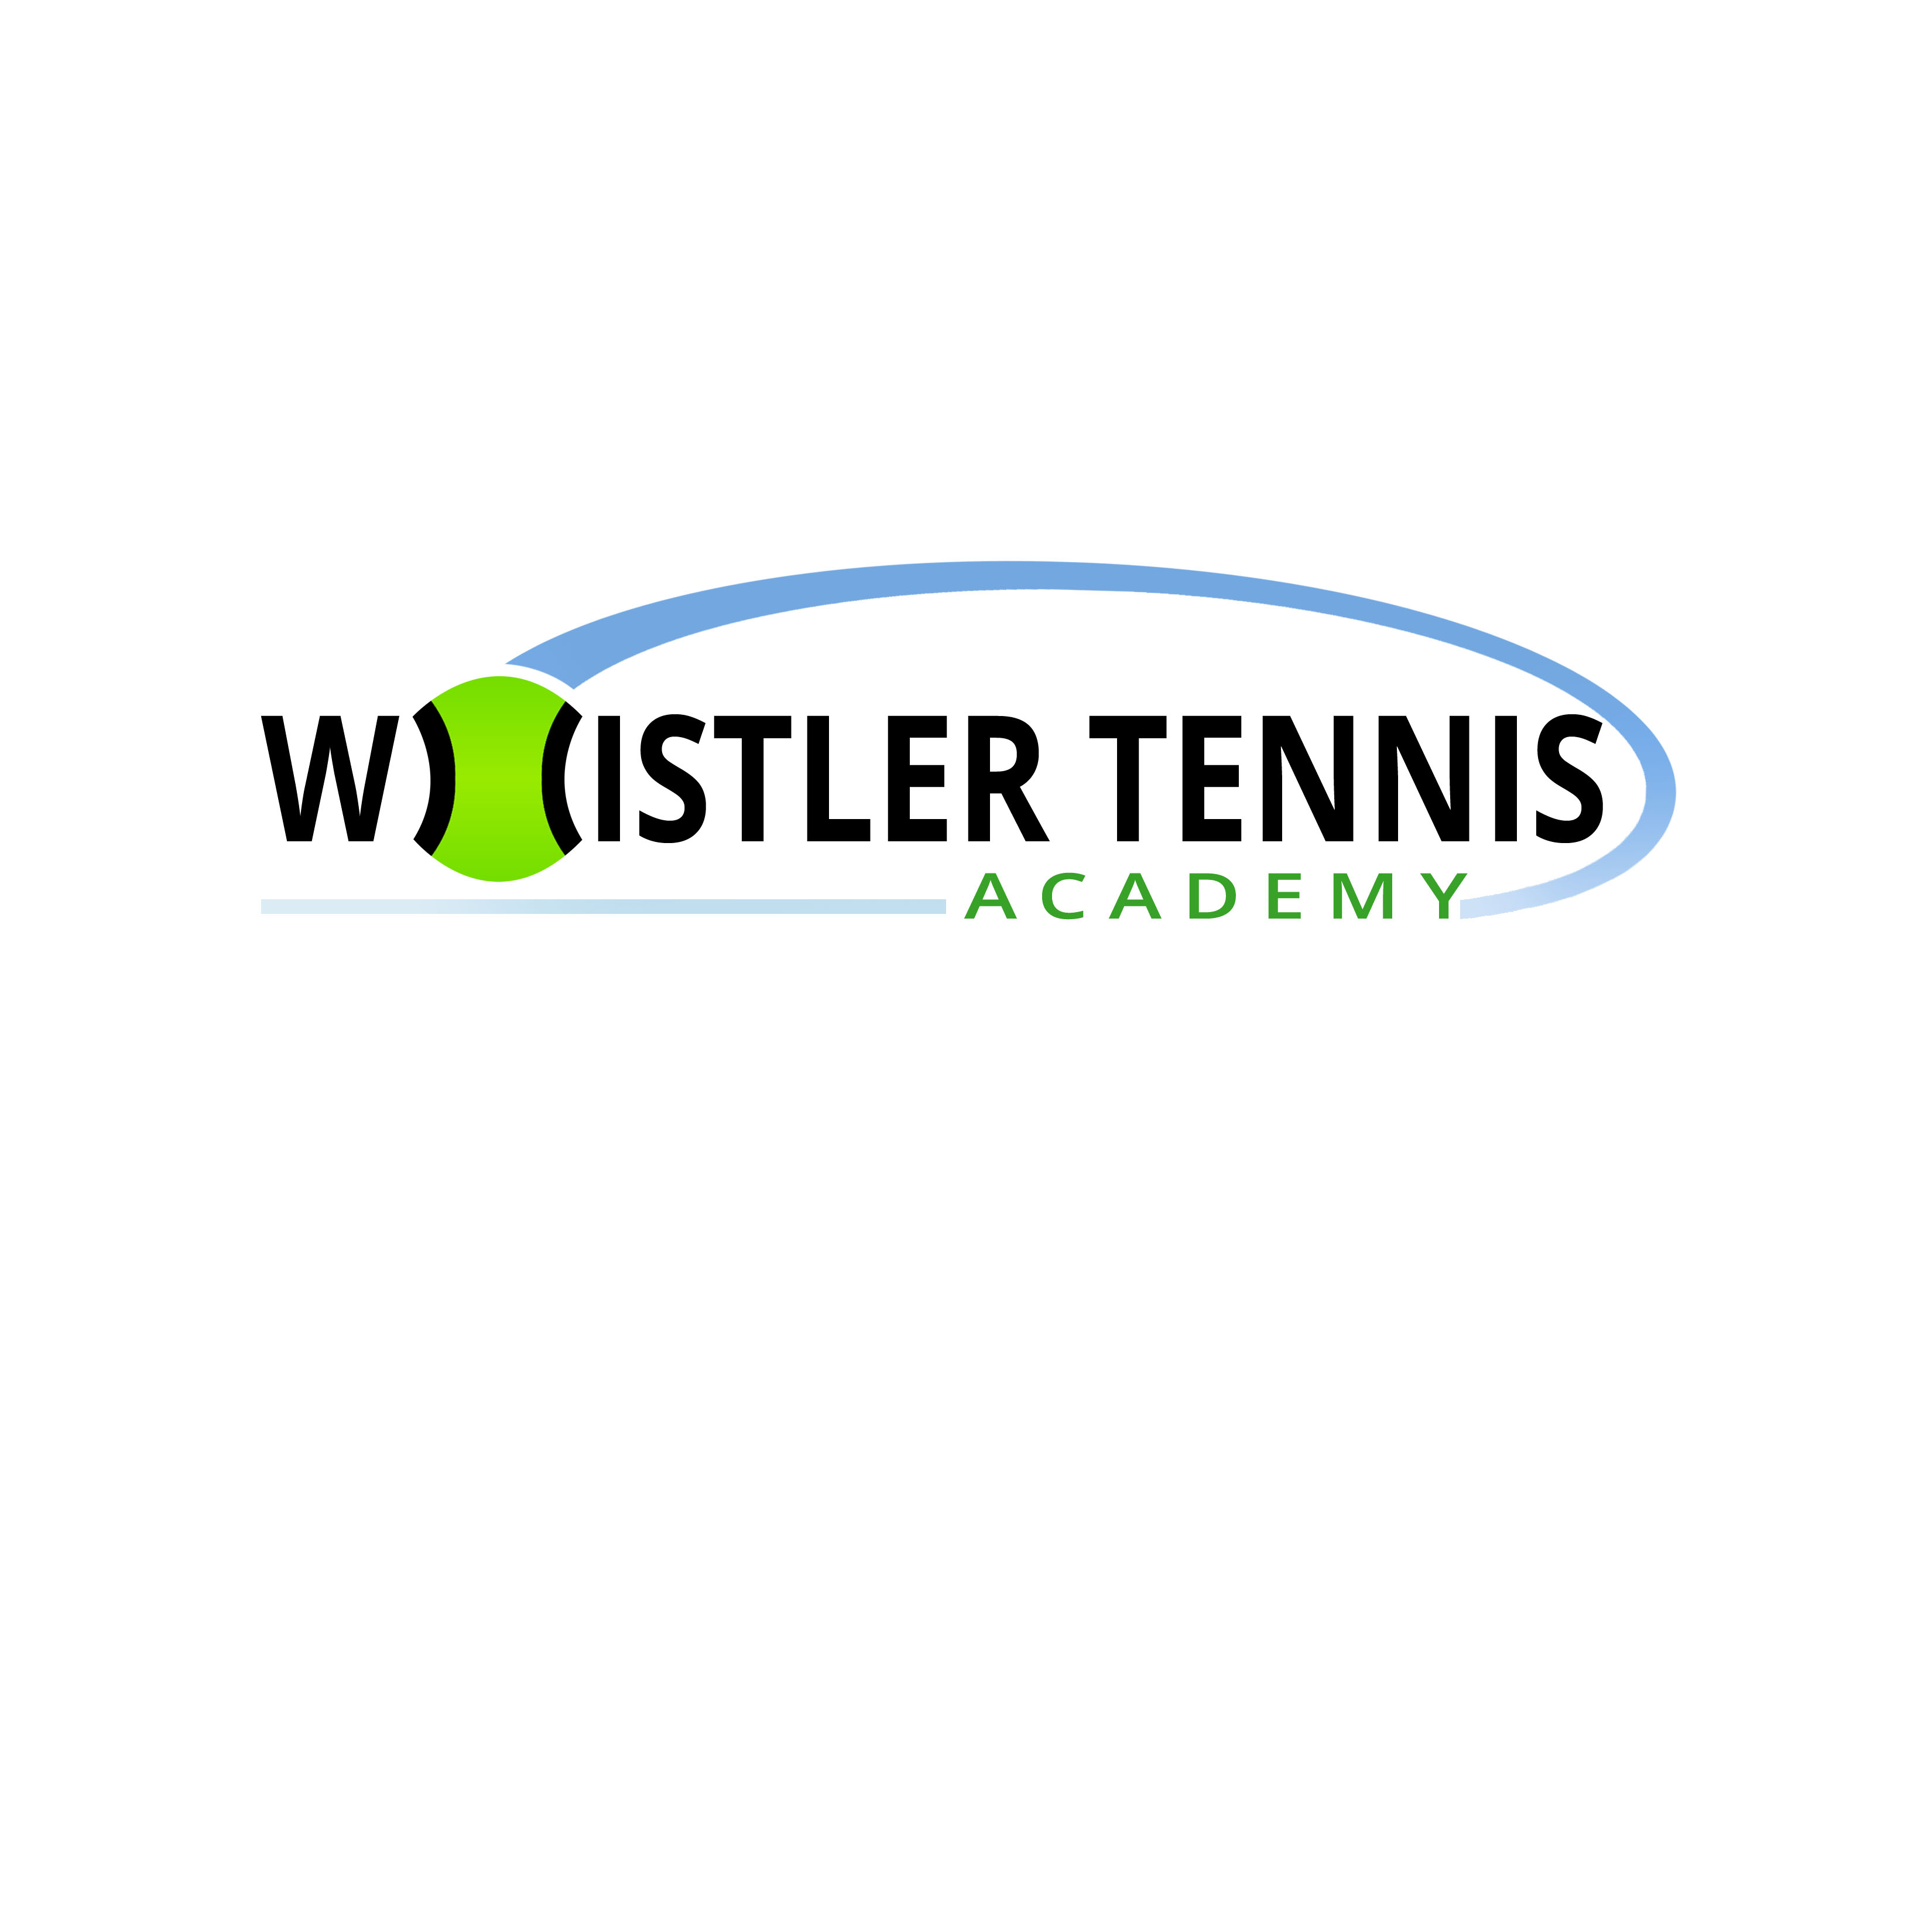 Logo Design by Allan Esclamado - Entry No. 223 in the Logo Design Contest Imaginative Logo Design for Whistler Tennis Academy.